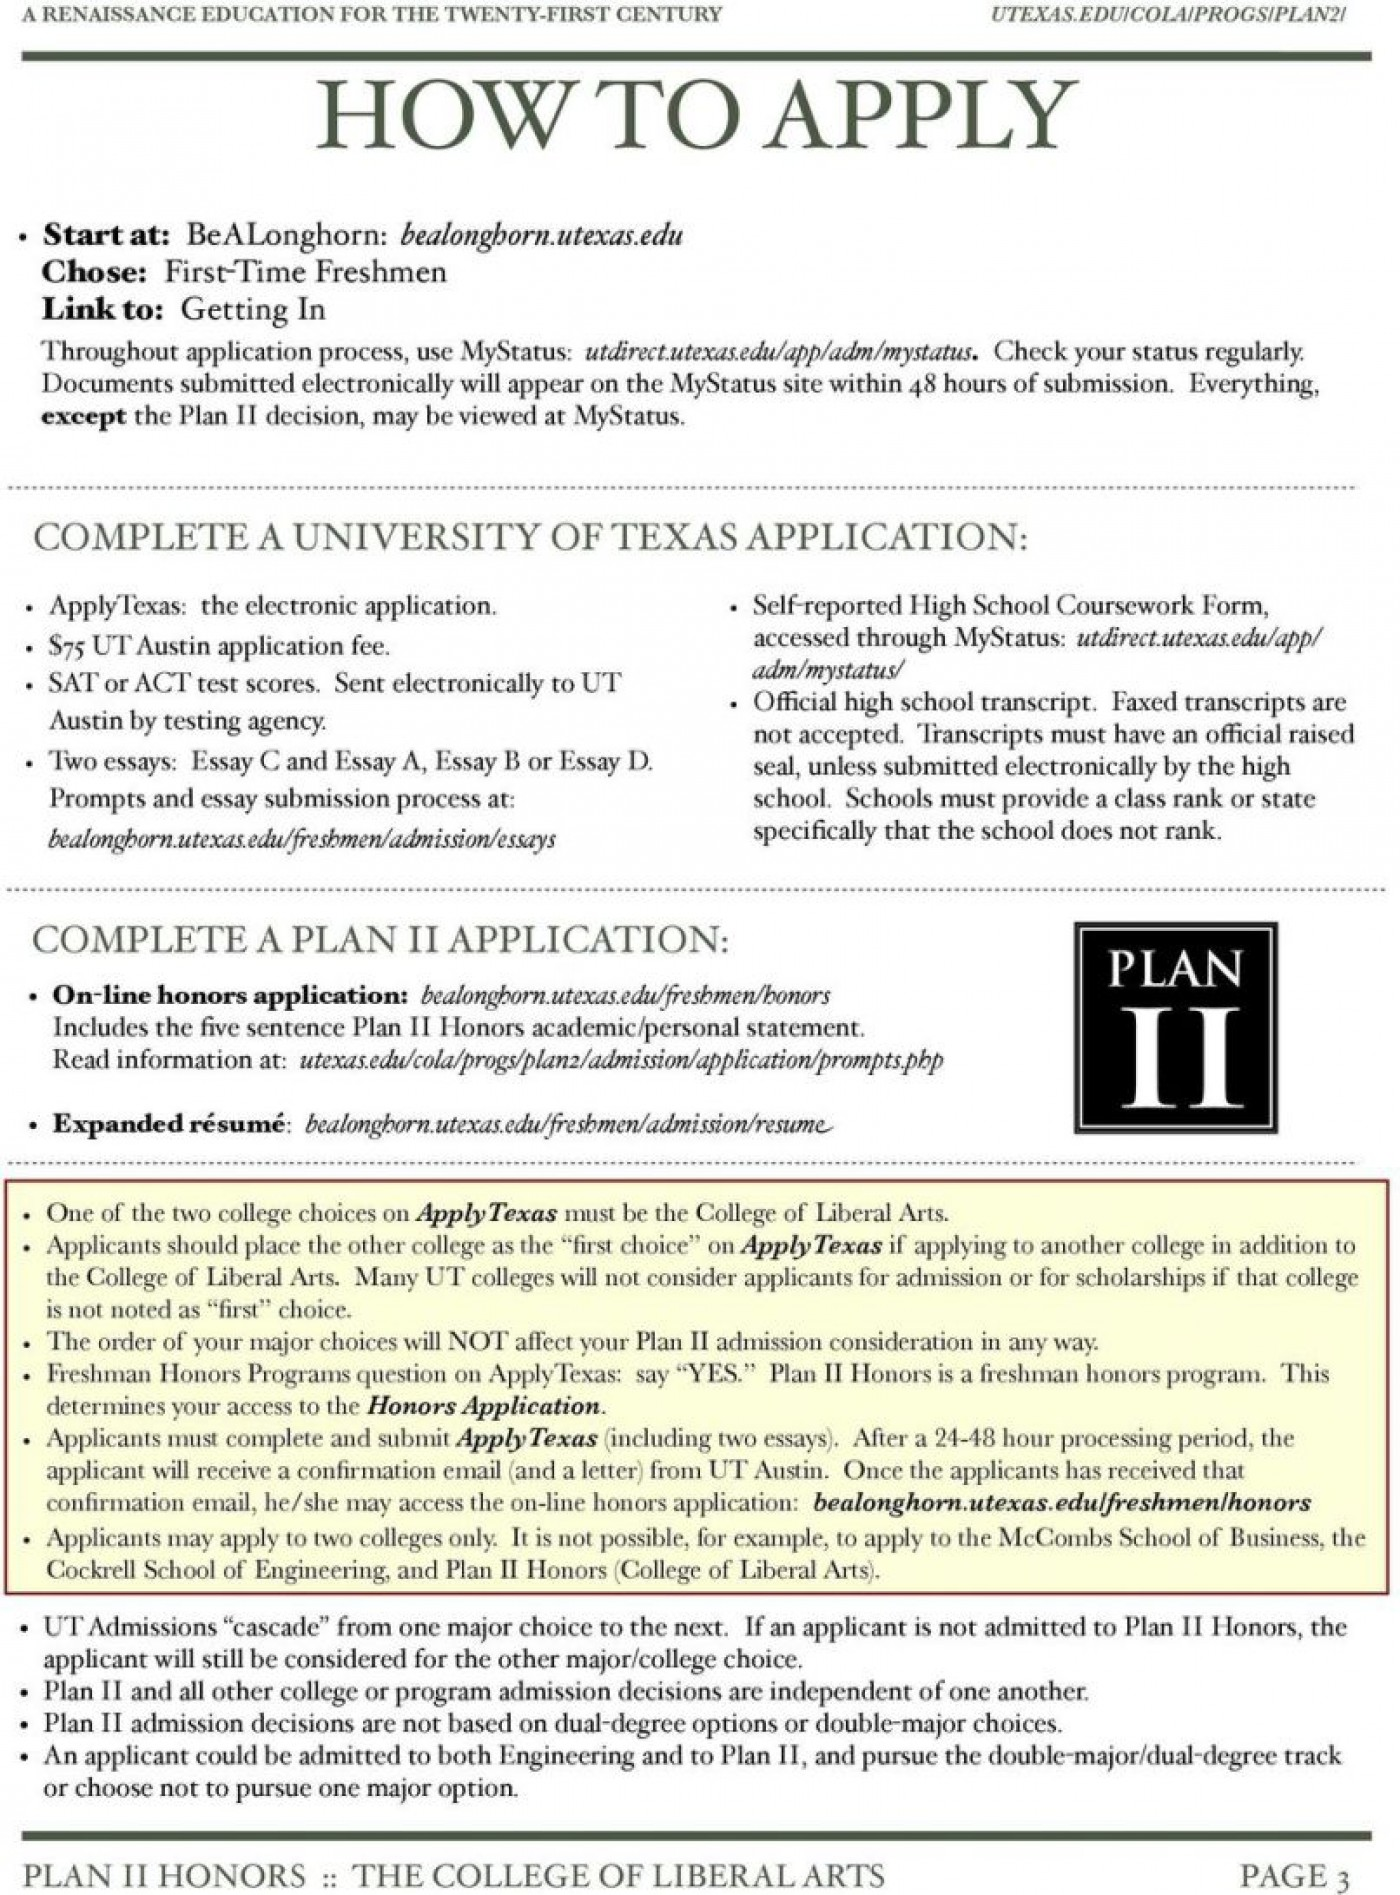 005 Applytexas Essay Prompts Poemdoc Or Apply Texas Topics P Fearsome Format Fall 2018 Length 1400